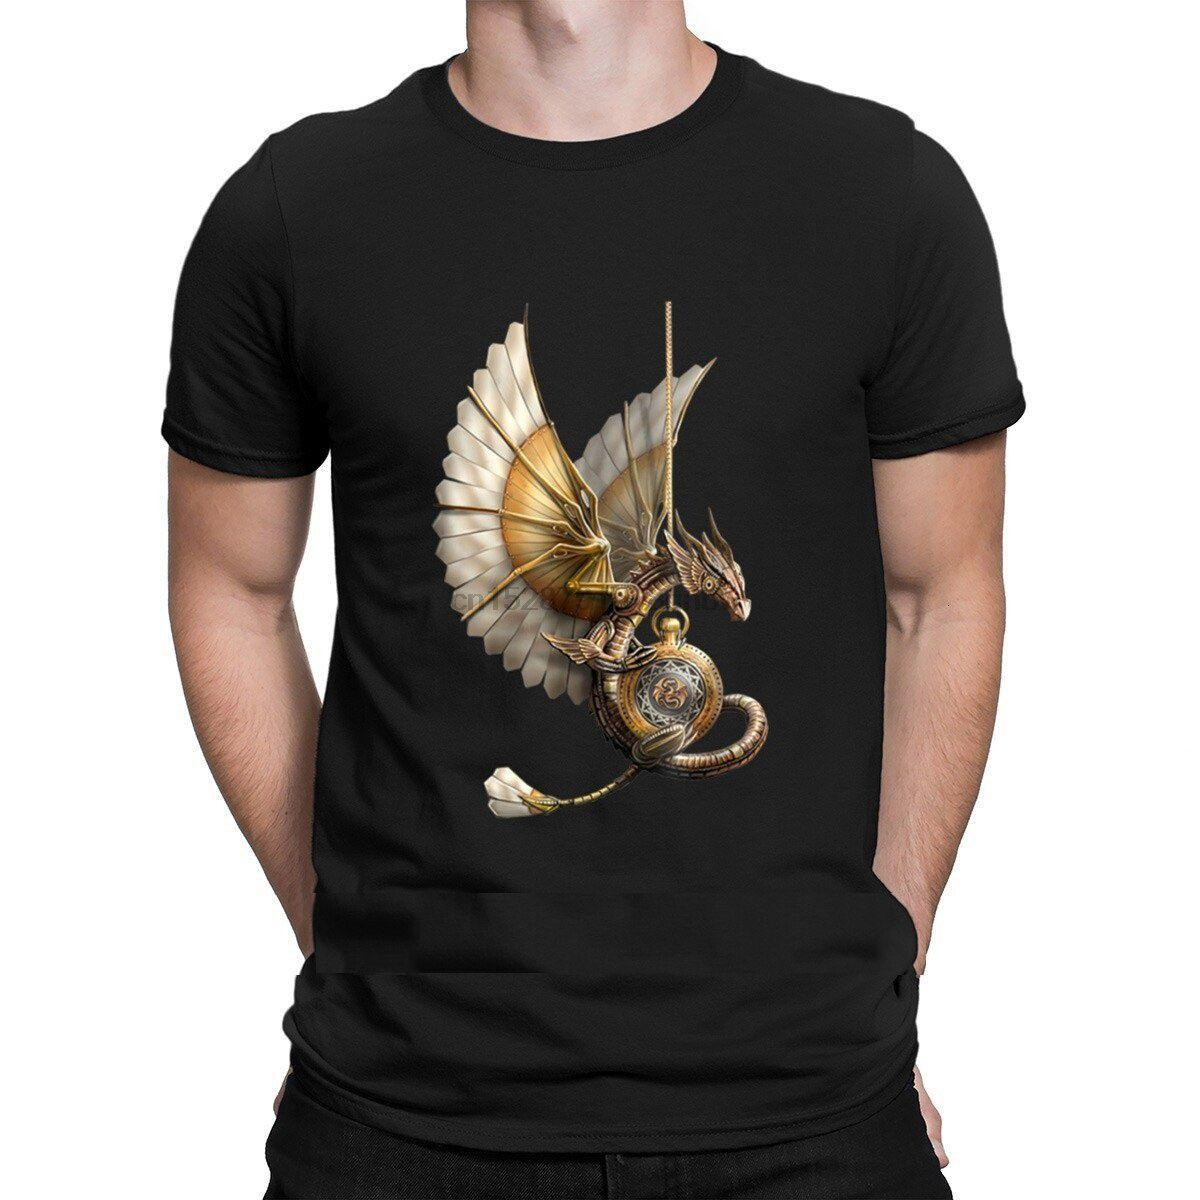 Steampunk Dragon on Watch Vintage t 100% Cotton Comfortable o Neck Designer Gift Summer Style Solid Color Shirt [<fmbefx8@163.com